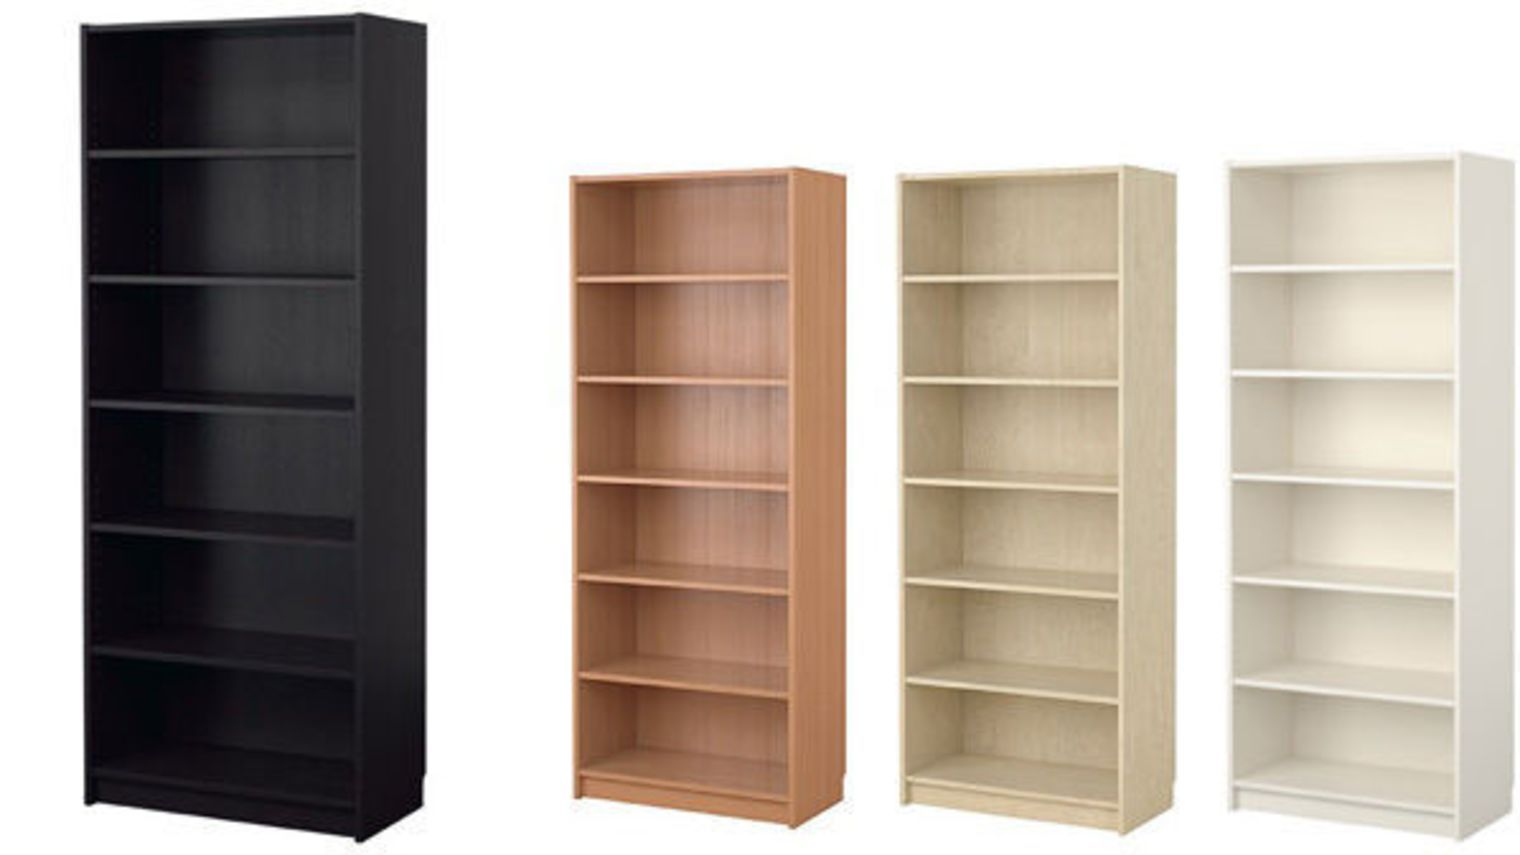 redoutable meuble biblioth que pas cher d coration. Black Bedroom Furniture Sets. Home Design Ideas